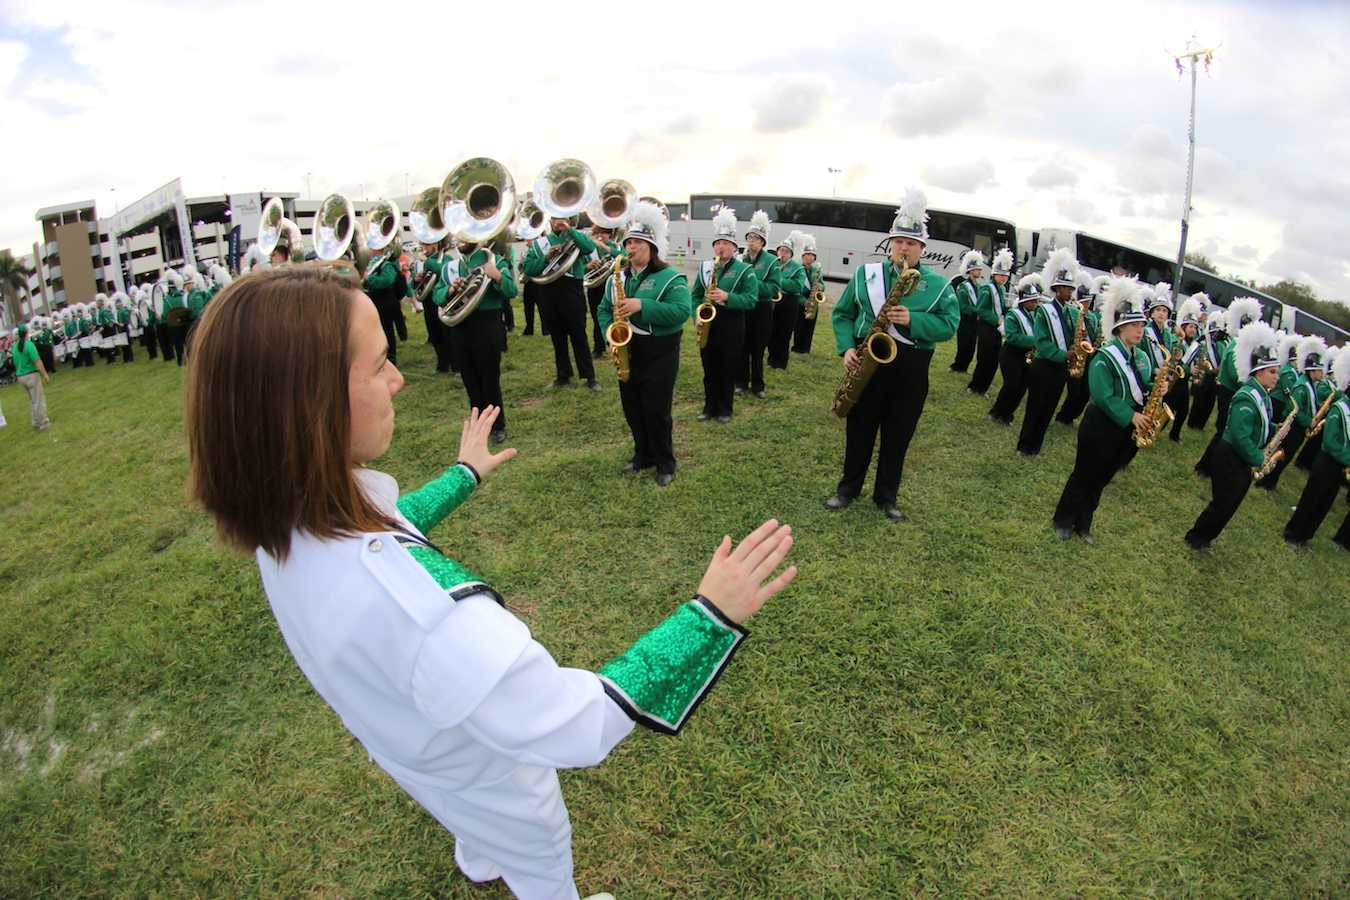 The Marching Thunder warms up before the Boca Raton Bowl Tuesday in Boca Raton, Florida.